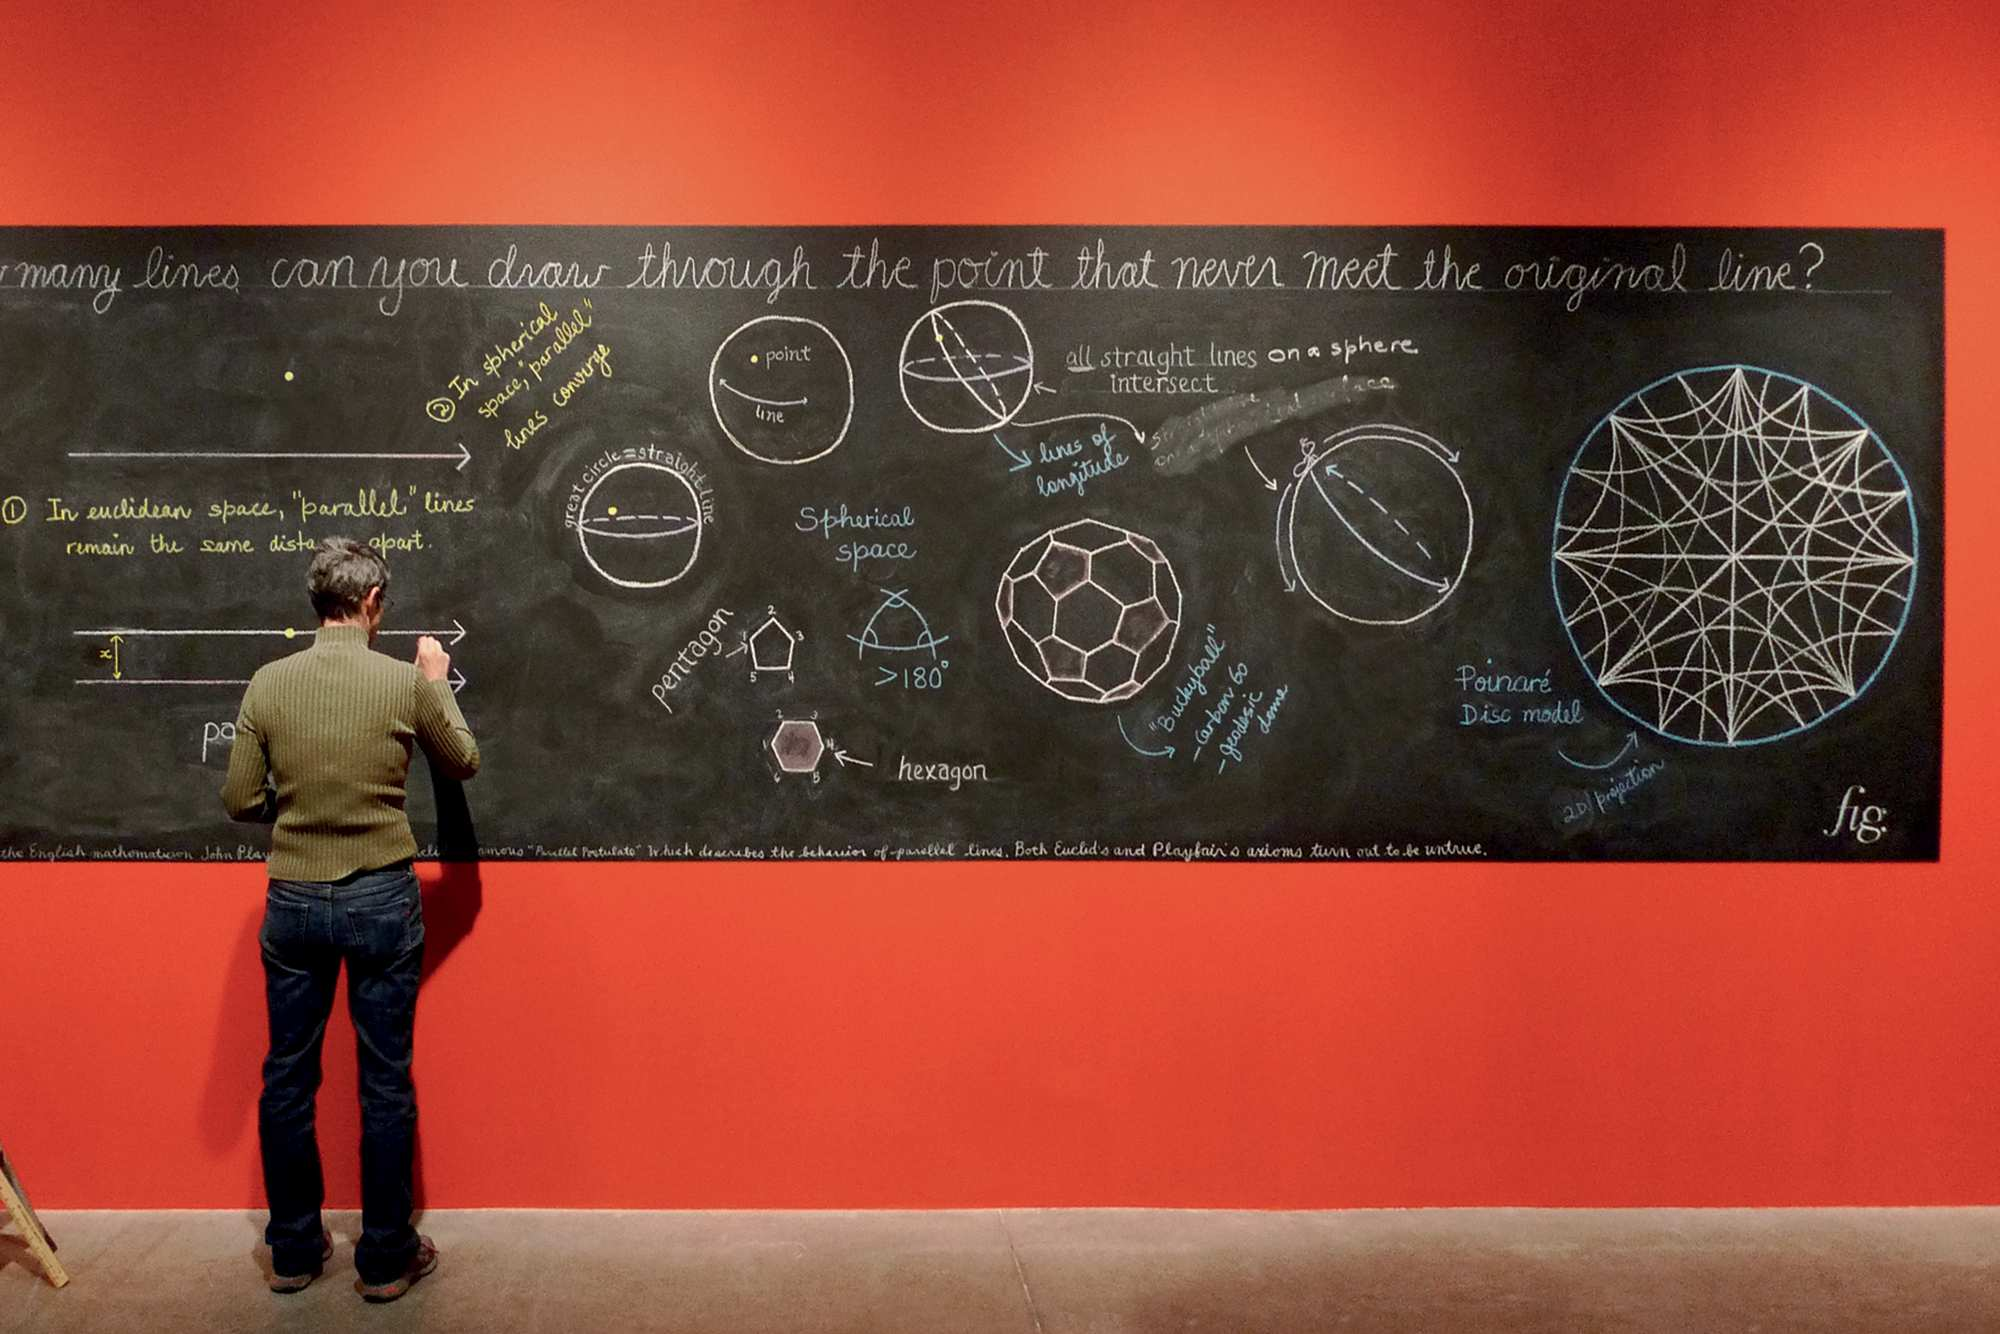 A woman writing on a blackboard with scientific drawings